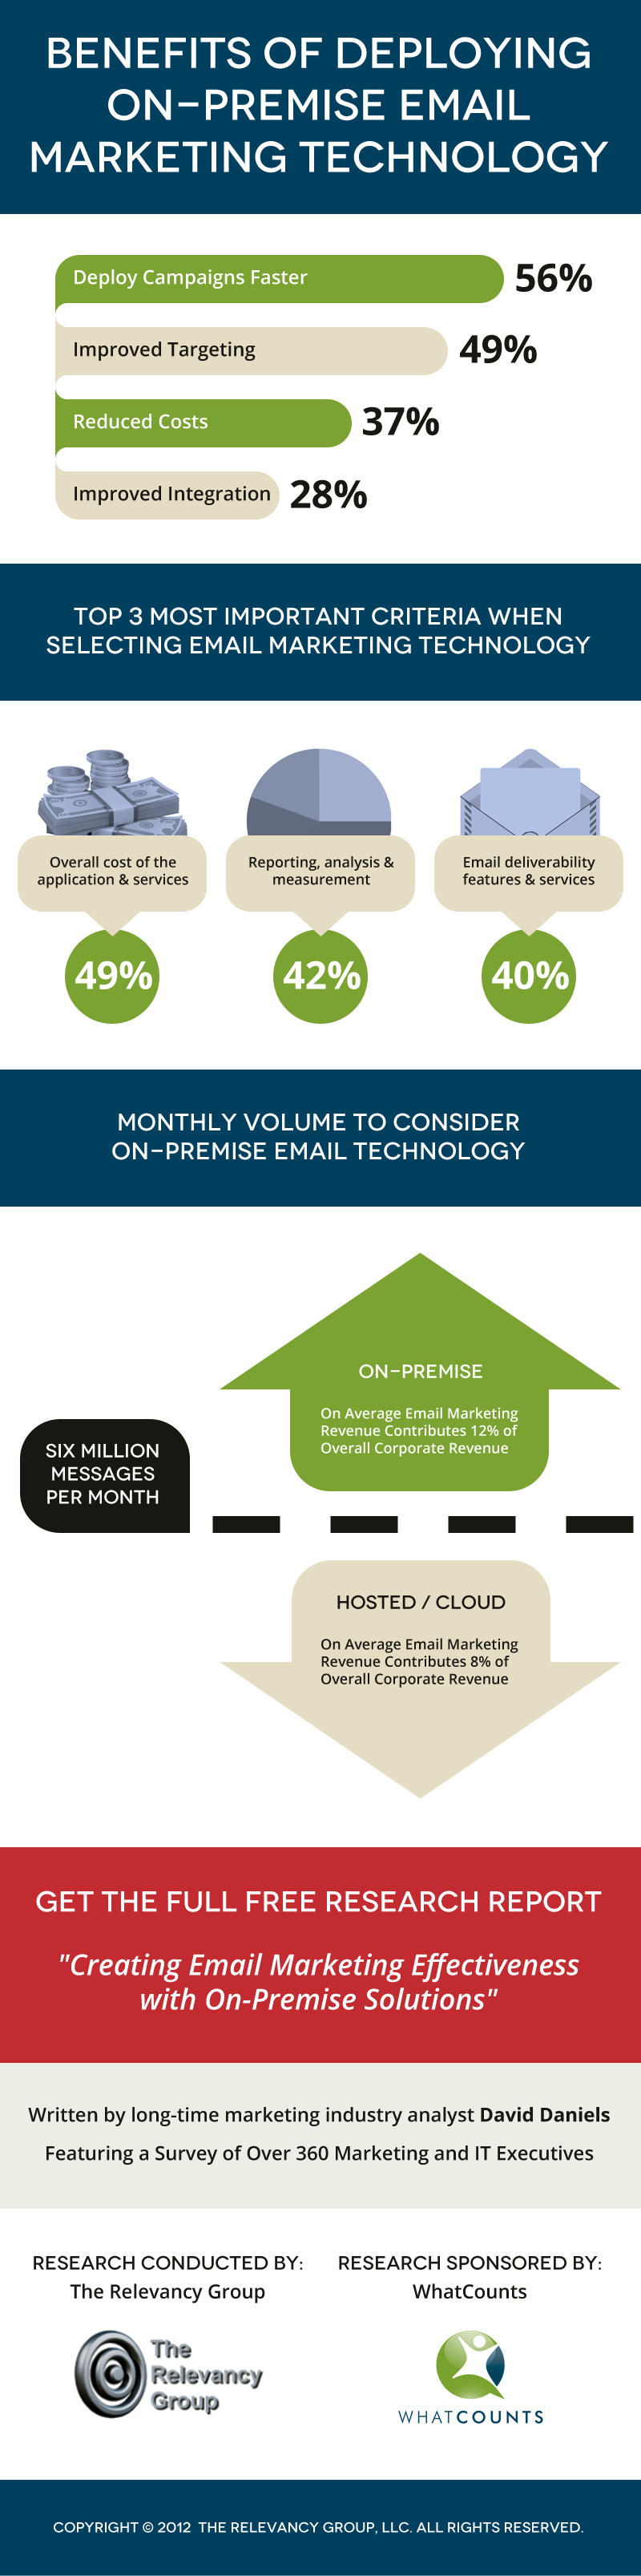 on-premise email marketing technology benefits